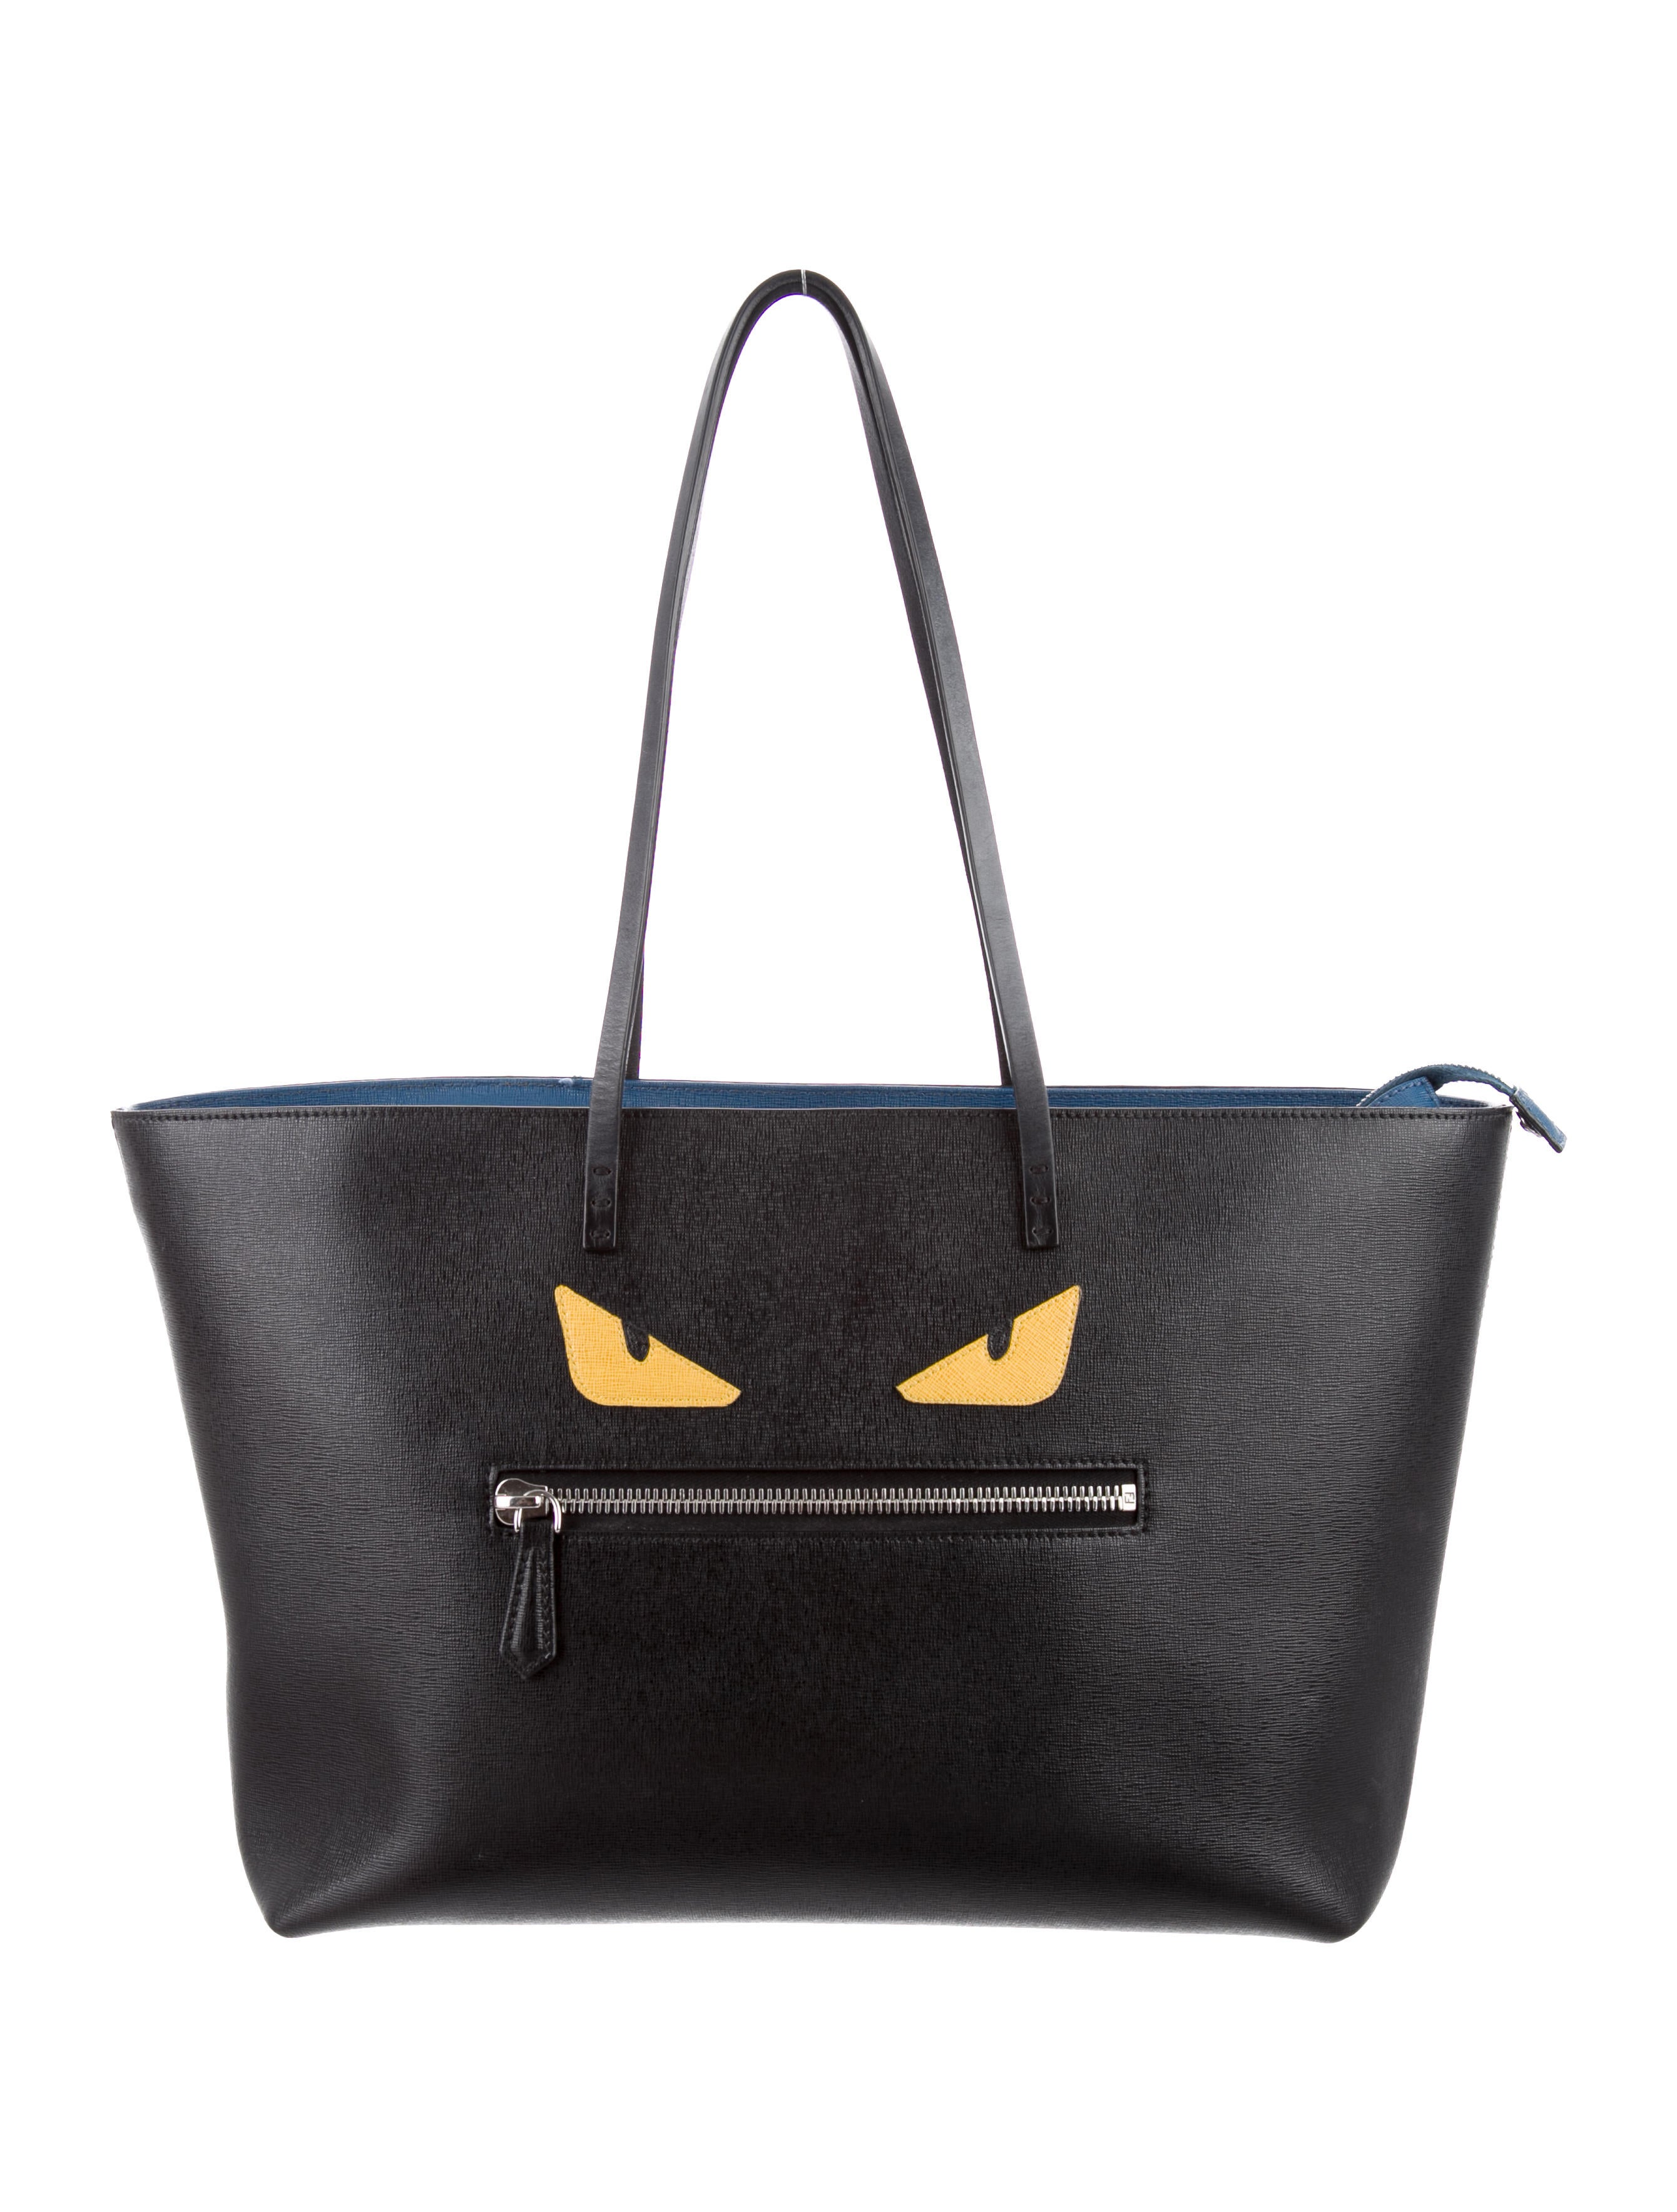 Fendi Monster Tote Bag - Handbags - FEN44102